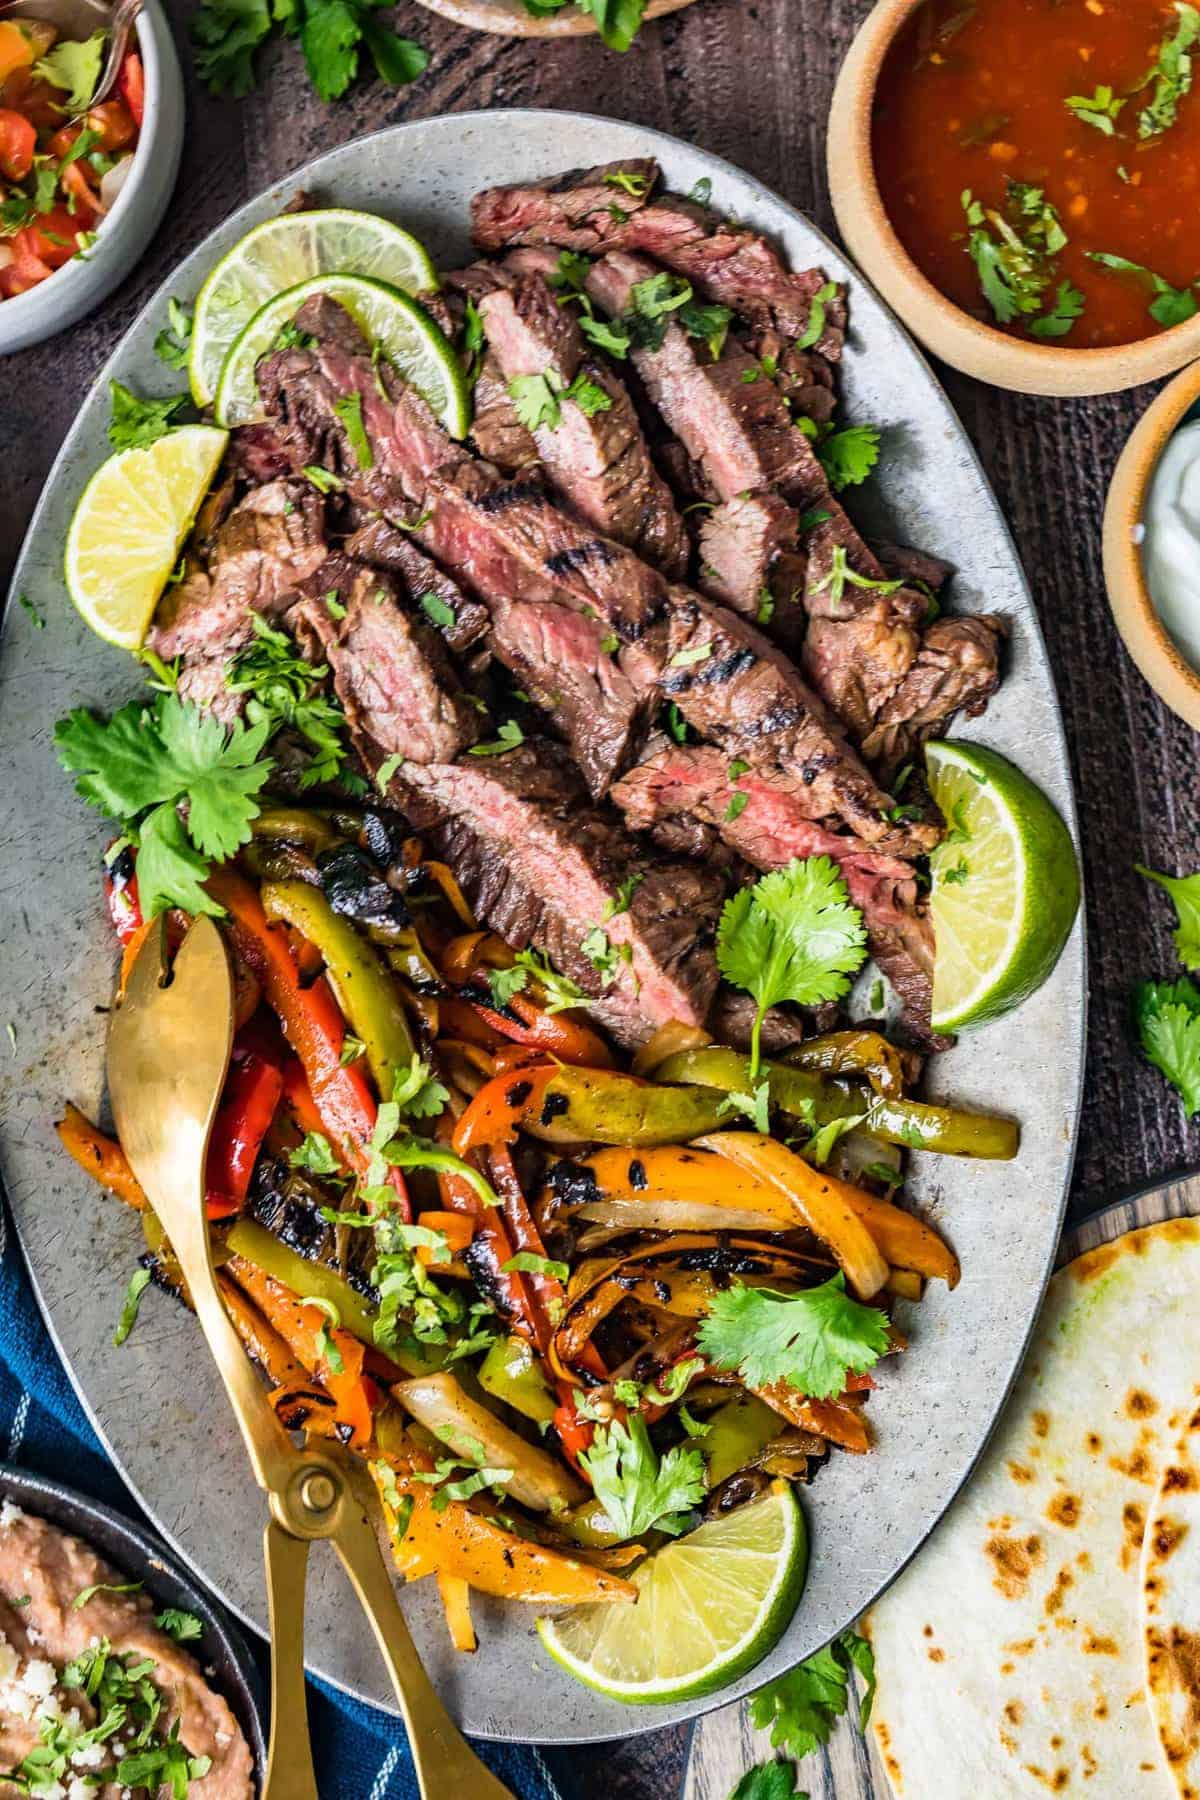 Steak fajitas served with lime wedges